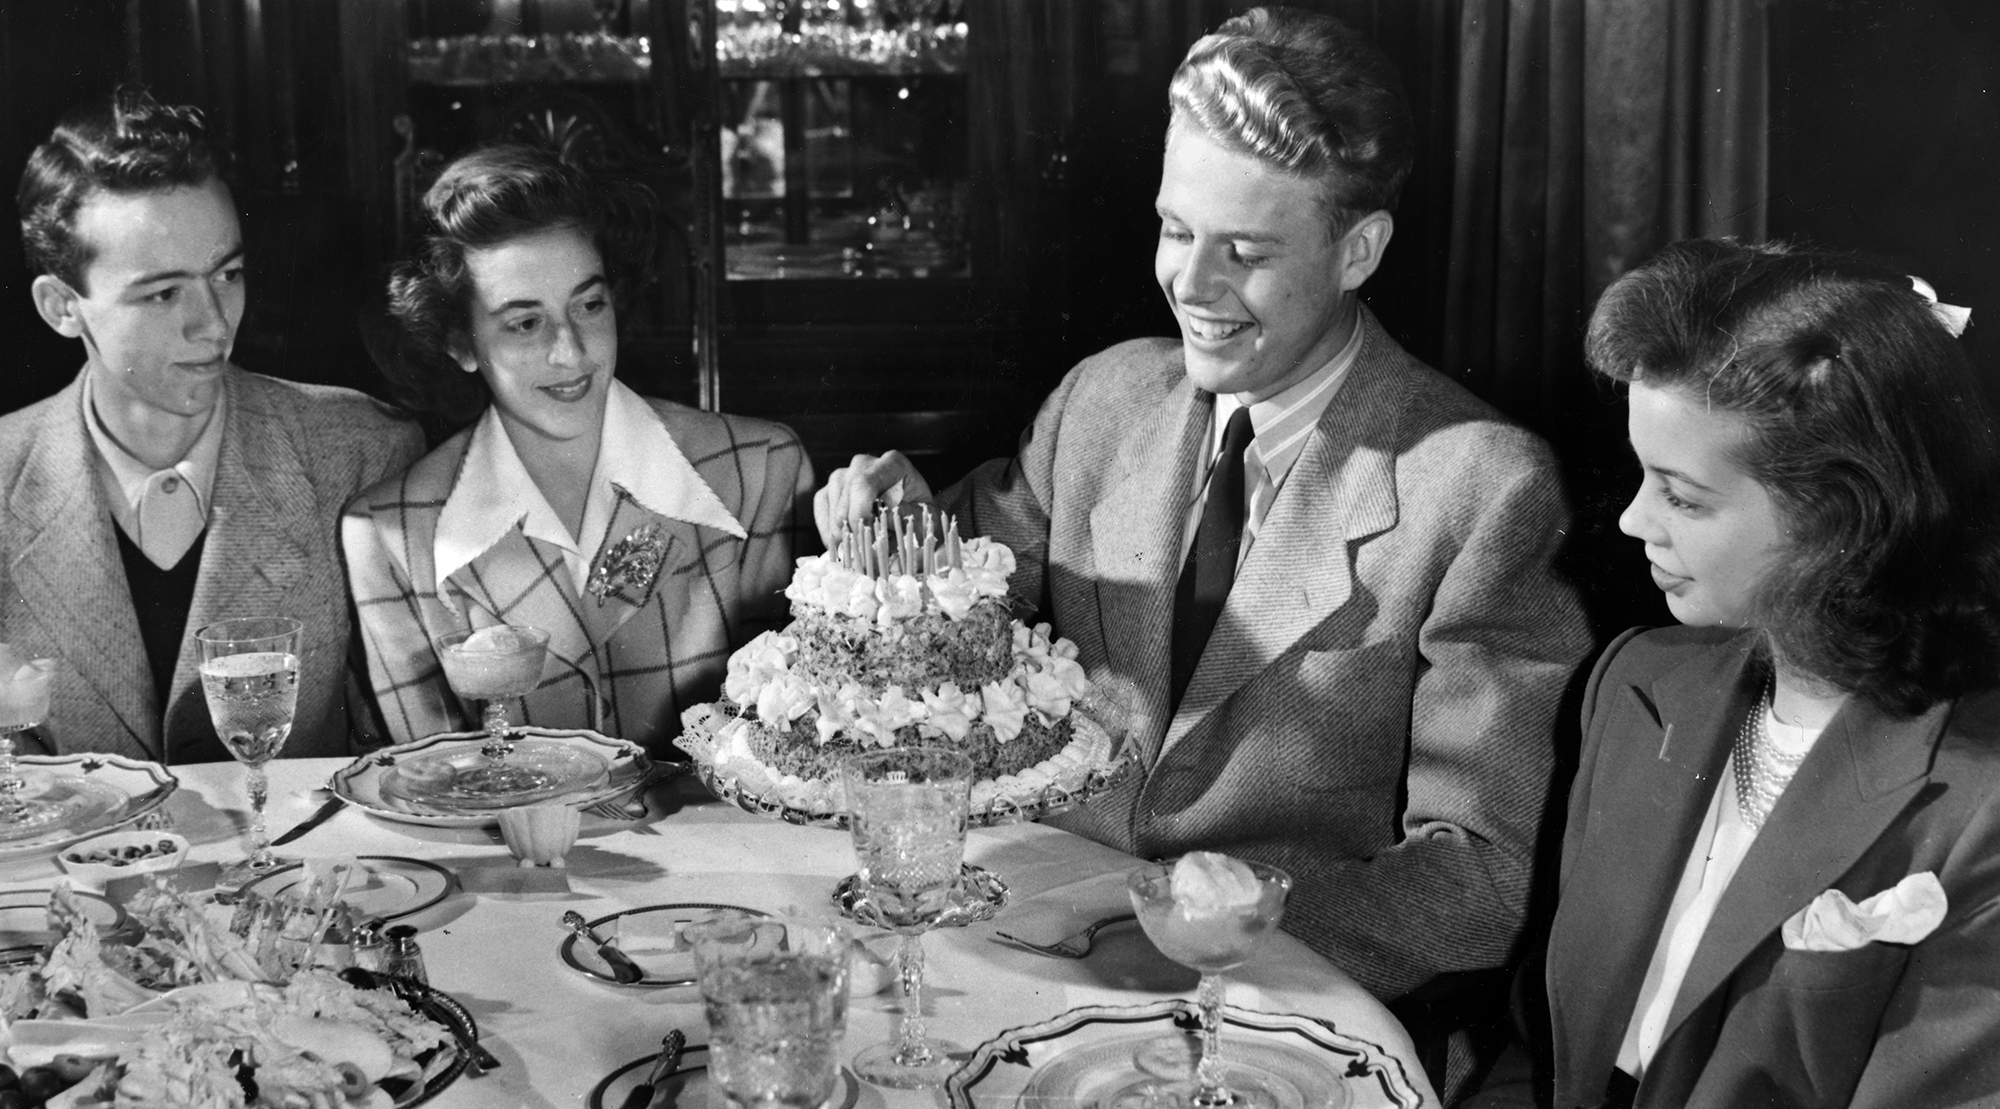 Each Governor family enjoyed hosting formal birthday parties for their children in the Mansion's dinning room.